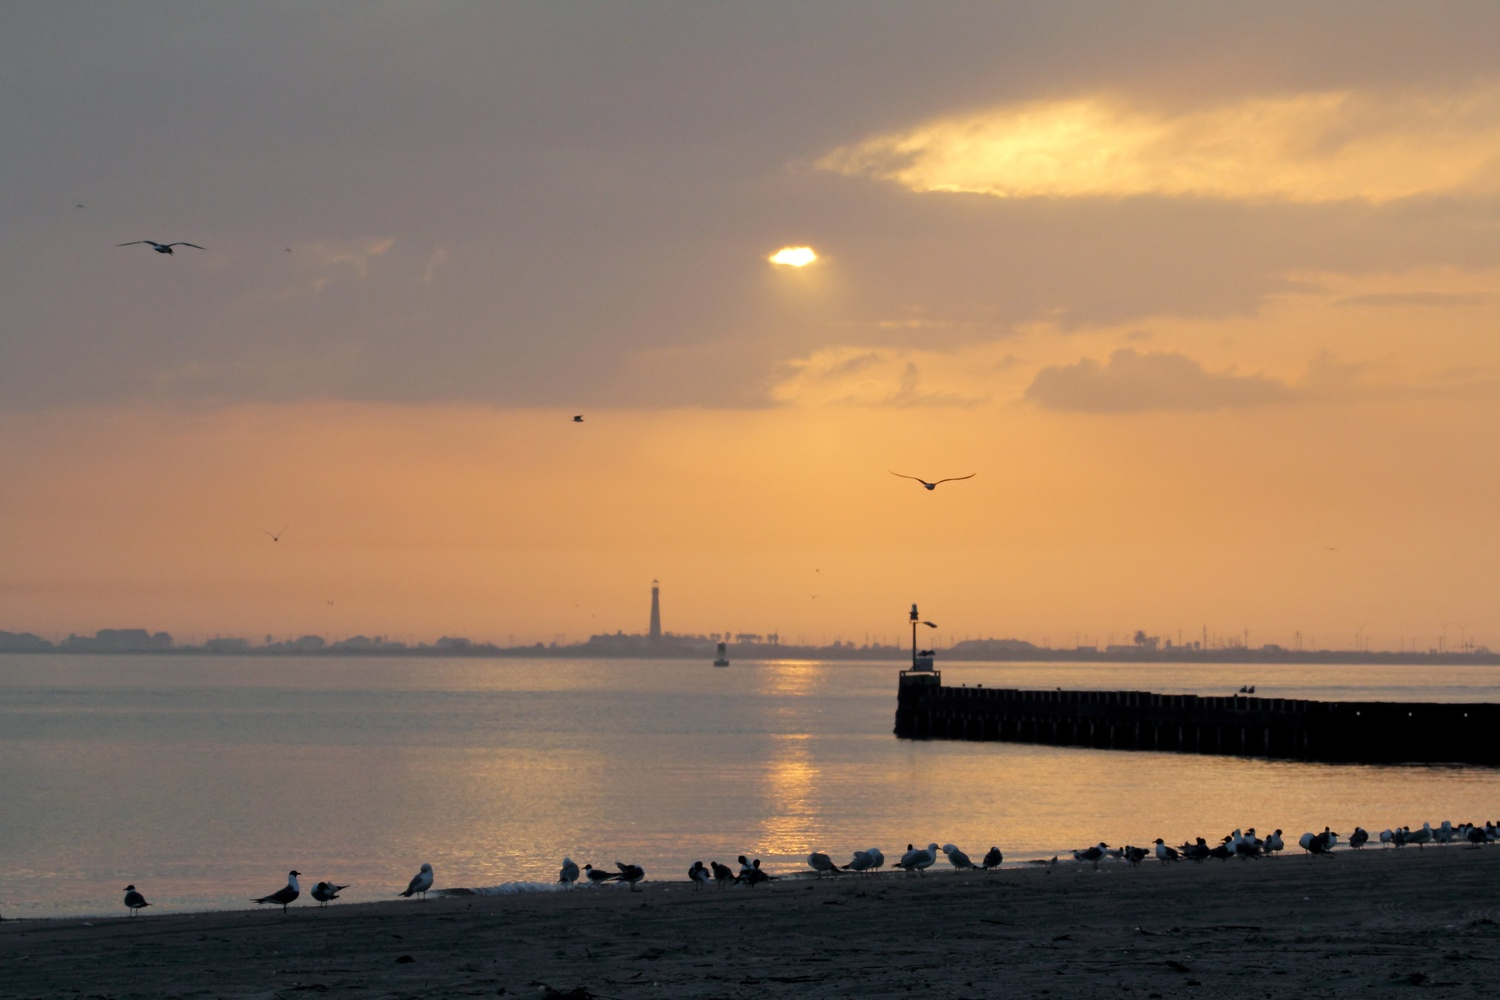 Dawn on Galveston Bay by Dudley Didereaux